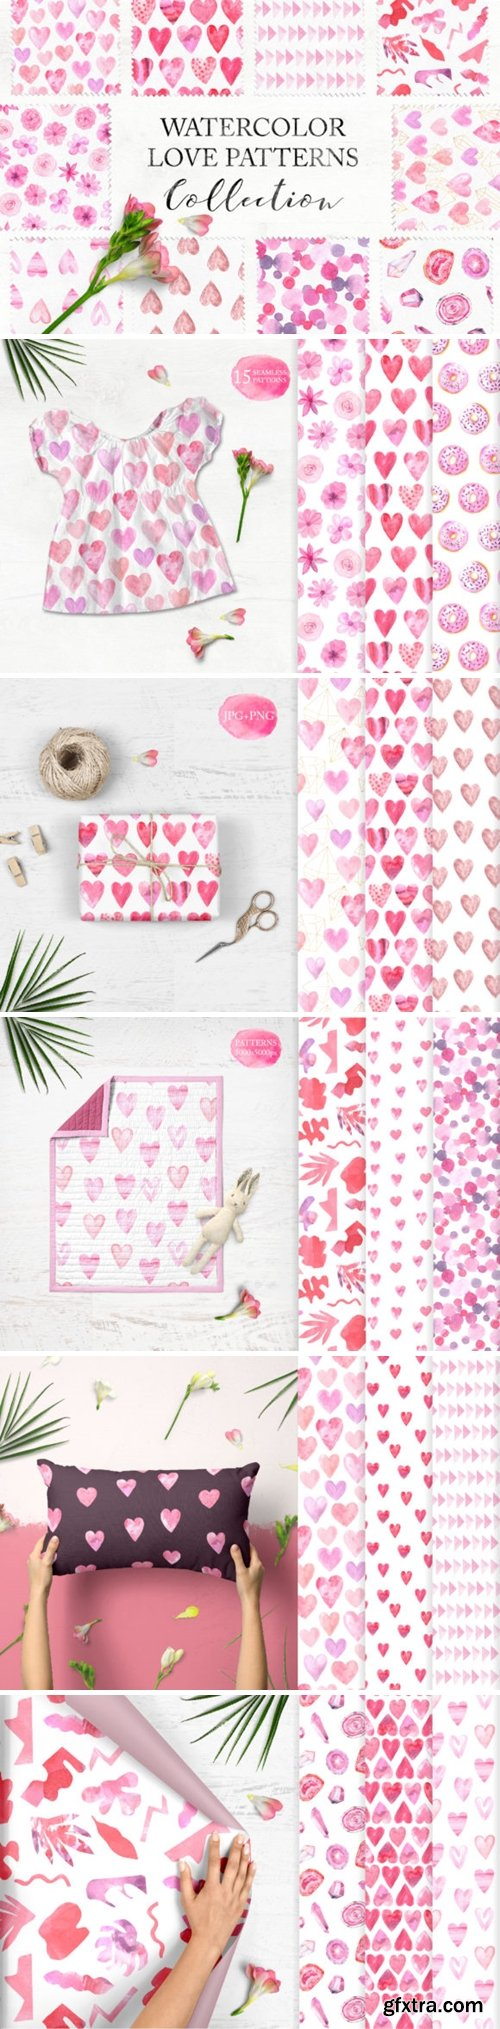 15 Watercolor Love Seamless Patterns 3546394